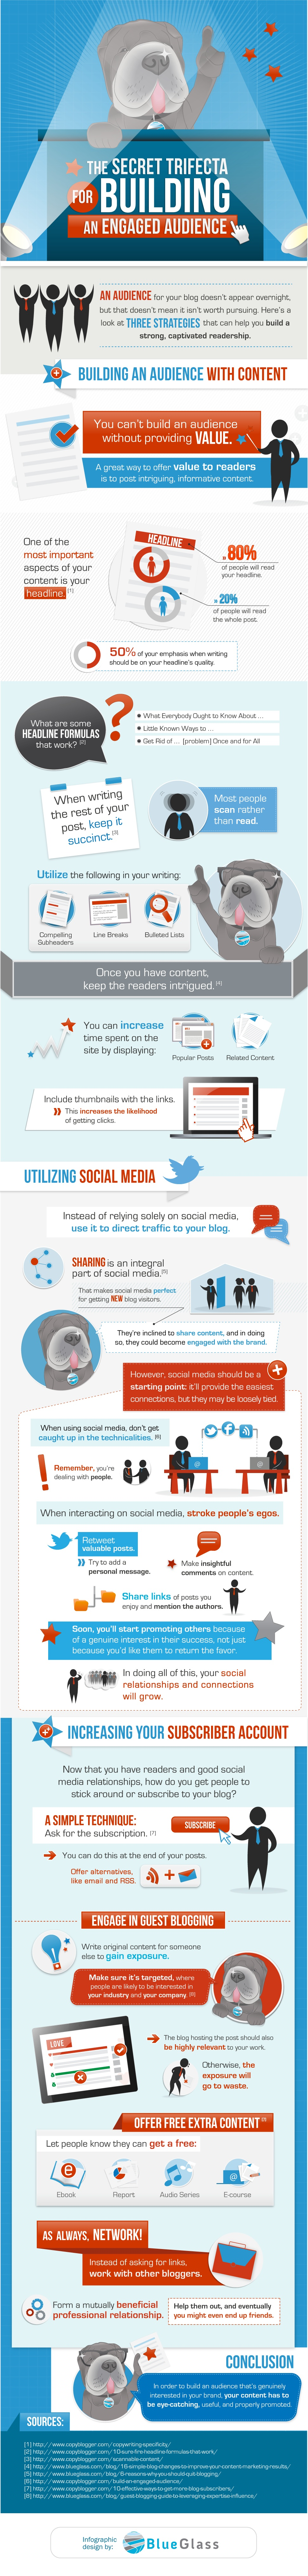 Infographic - Building An Engaged Audience